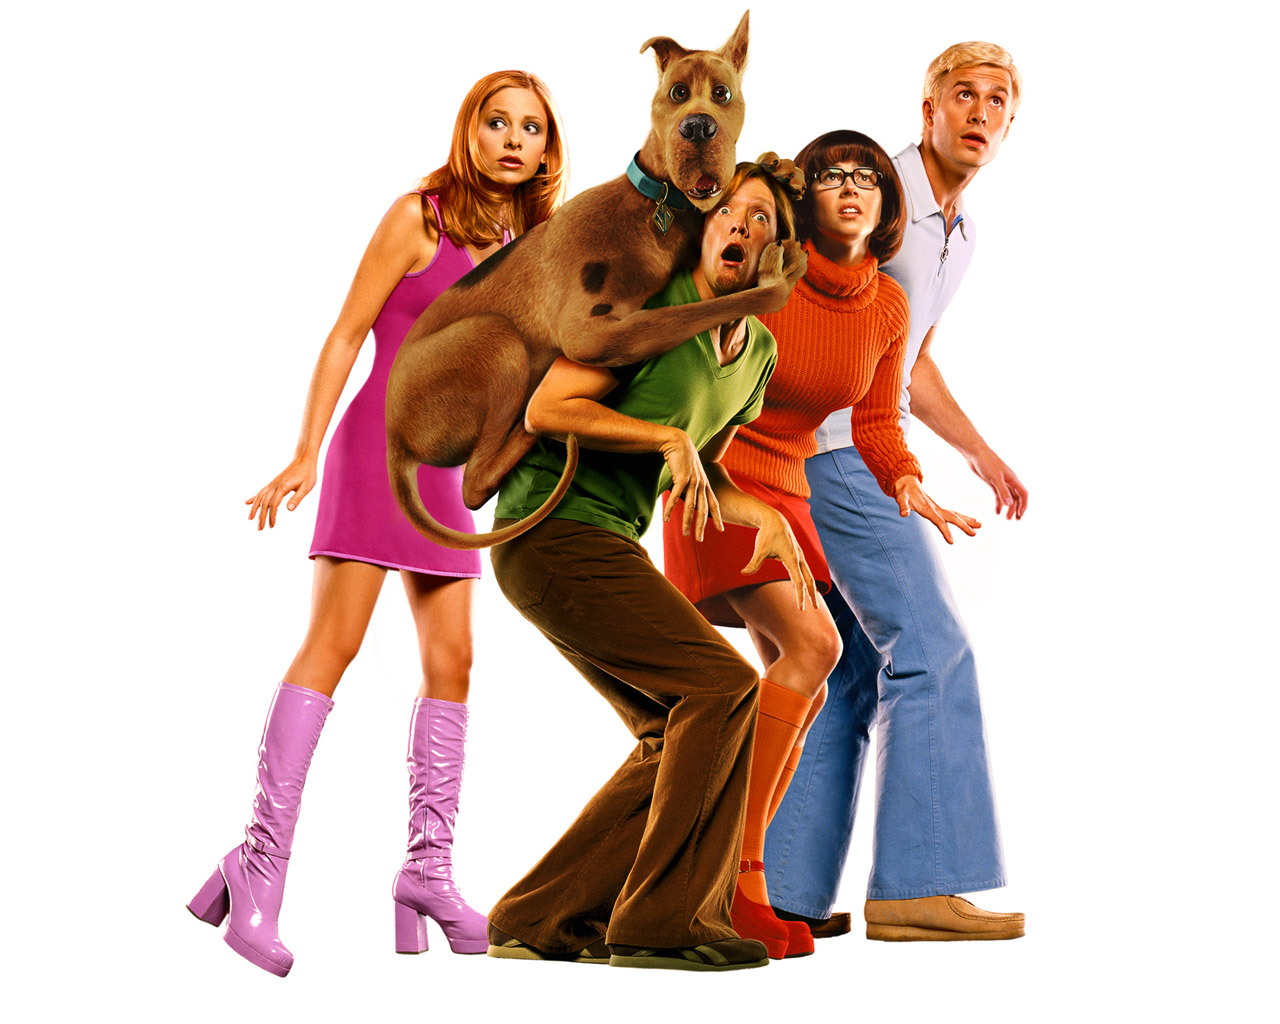 Scooby doo images scooby doo hd wallpaper and background - Scoubidou film ...